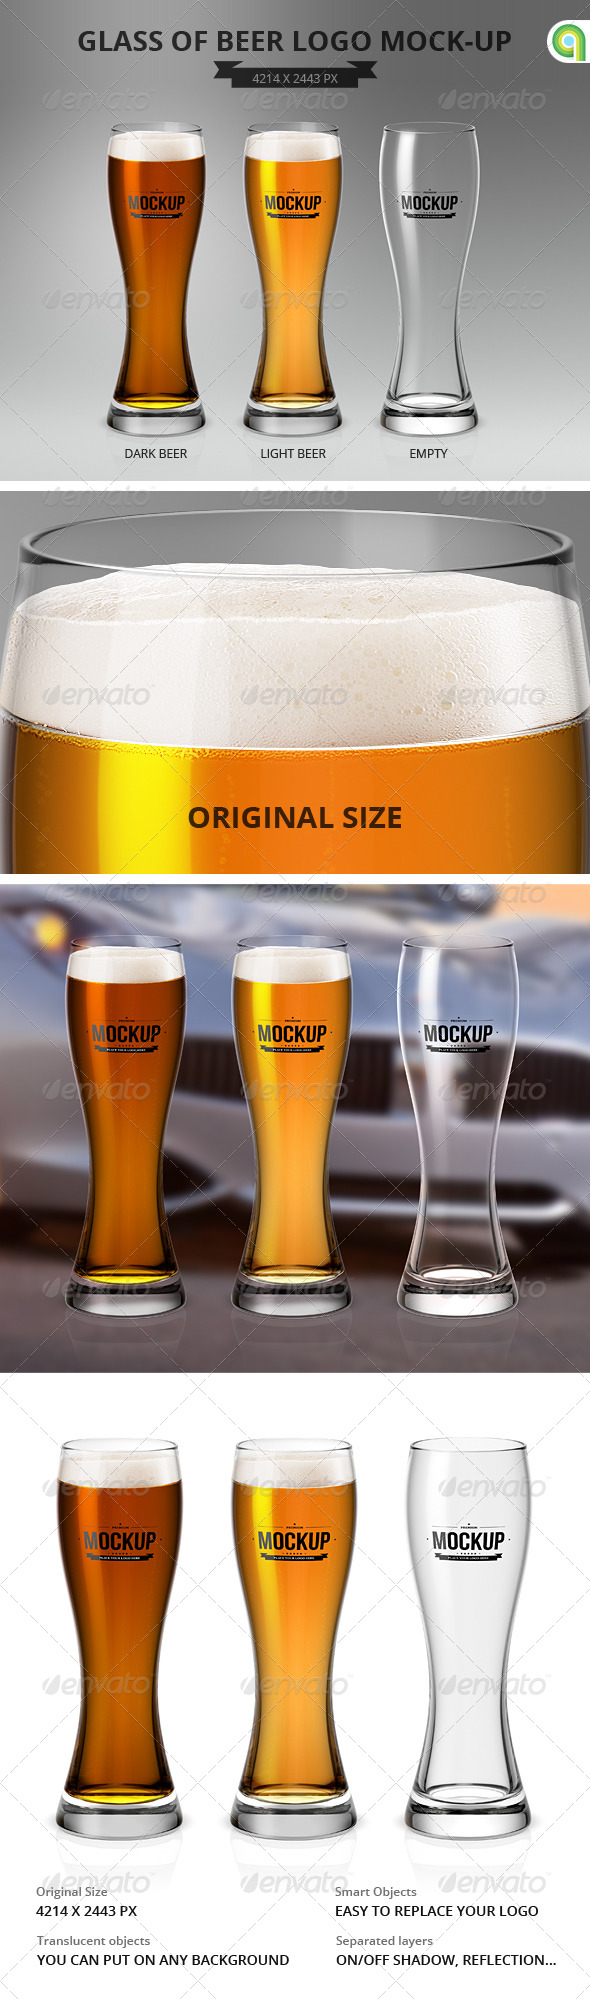 GraphicRiver Glass of Beer Logo Mock-Up 7636861